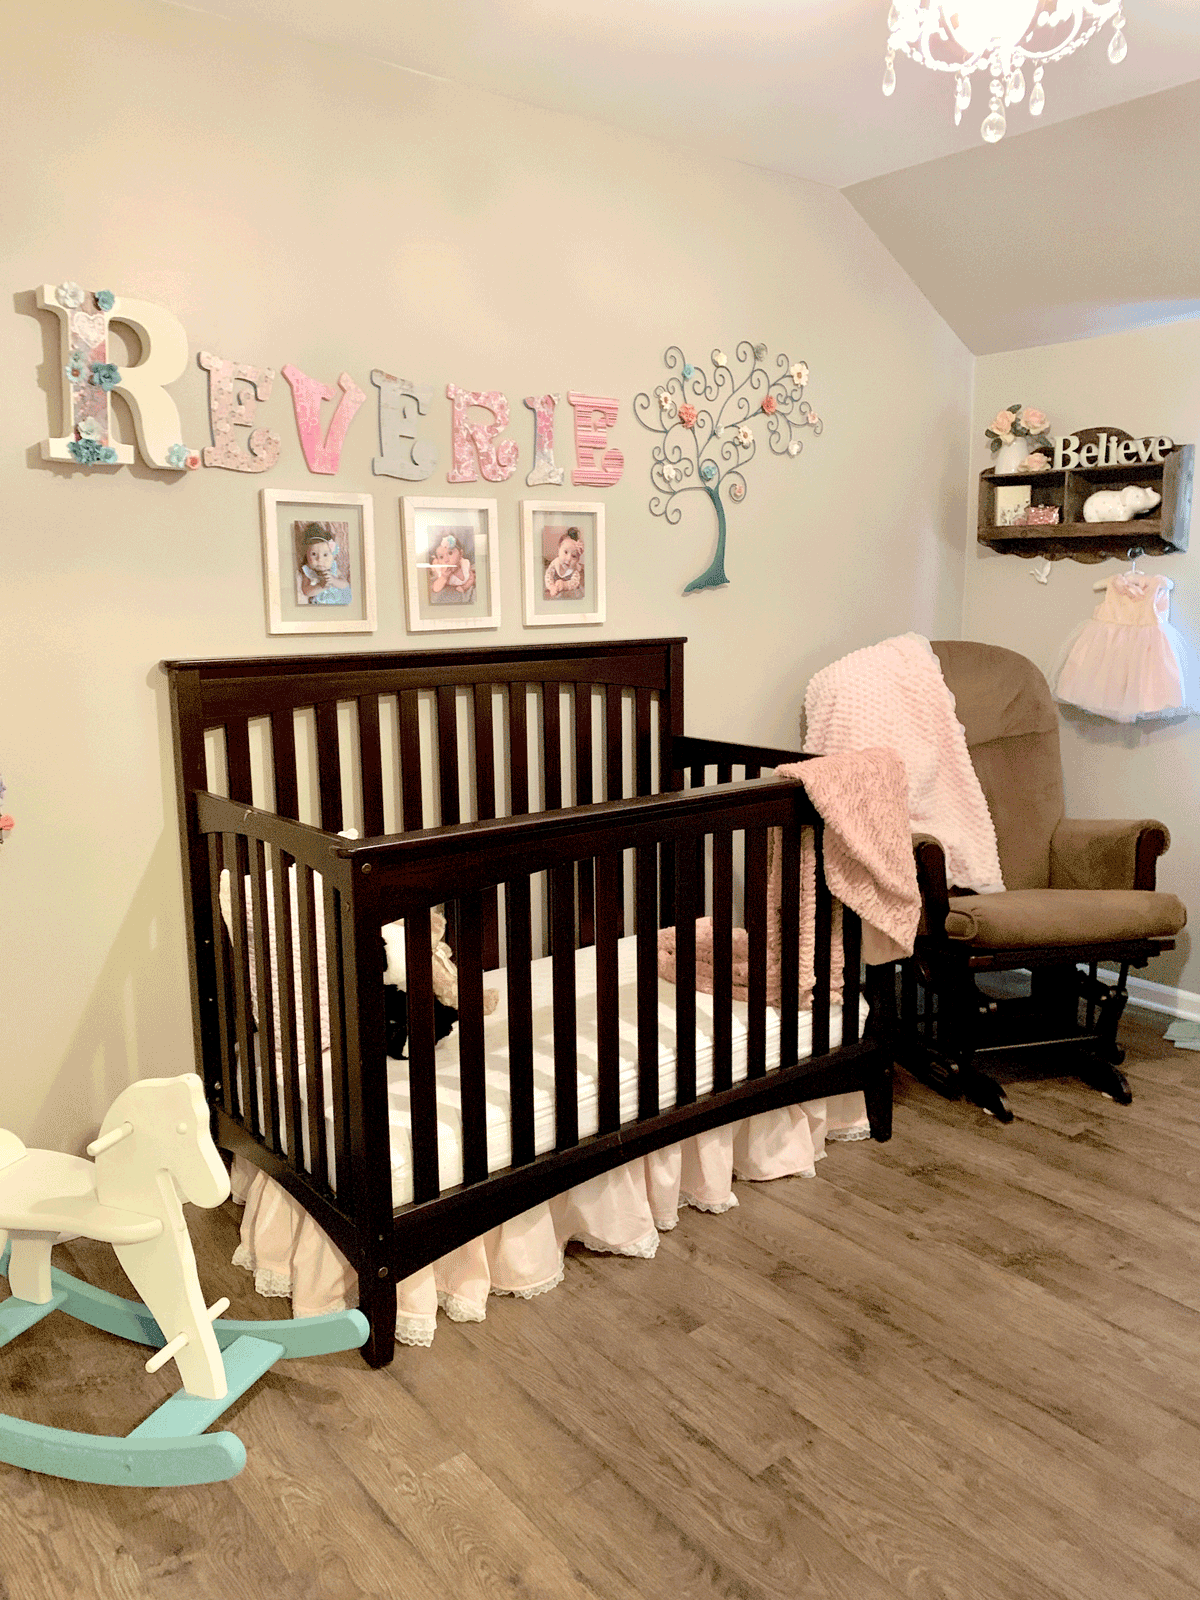 modge podge wooden name letters on wall above crib decorating a girls nursery